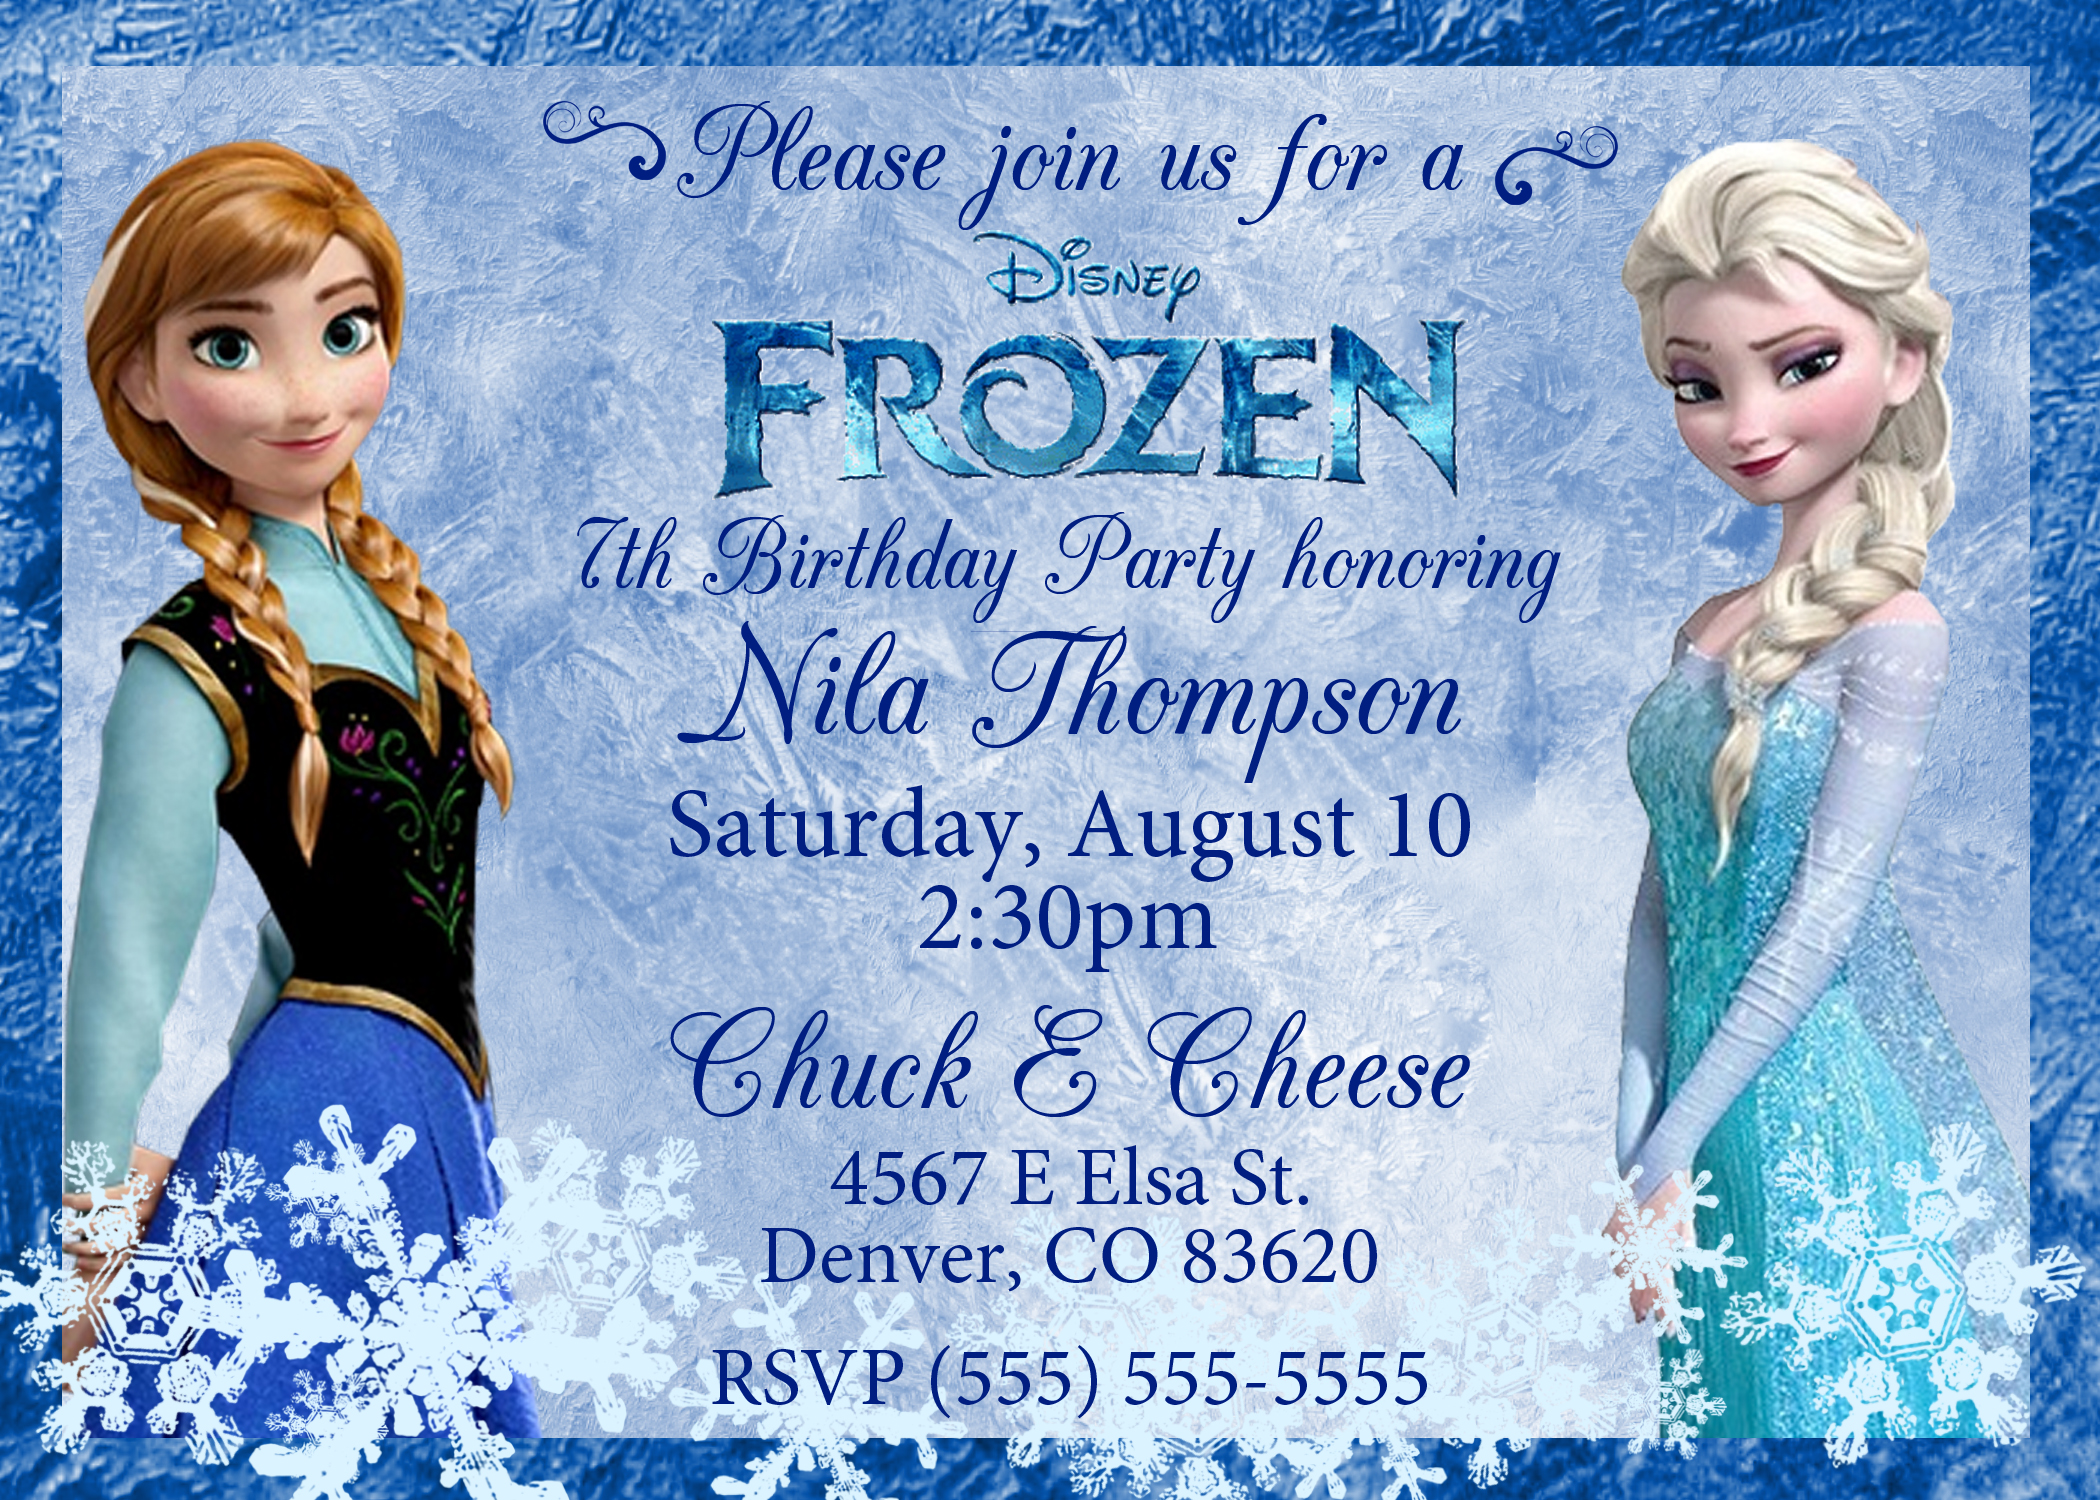 frozen birthday party invitations free printable ; frozen-2013-3-birthday-invitation